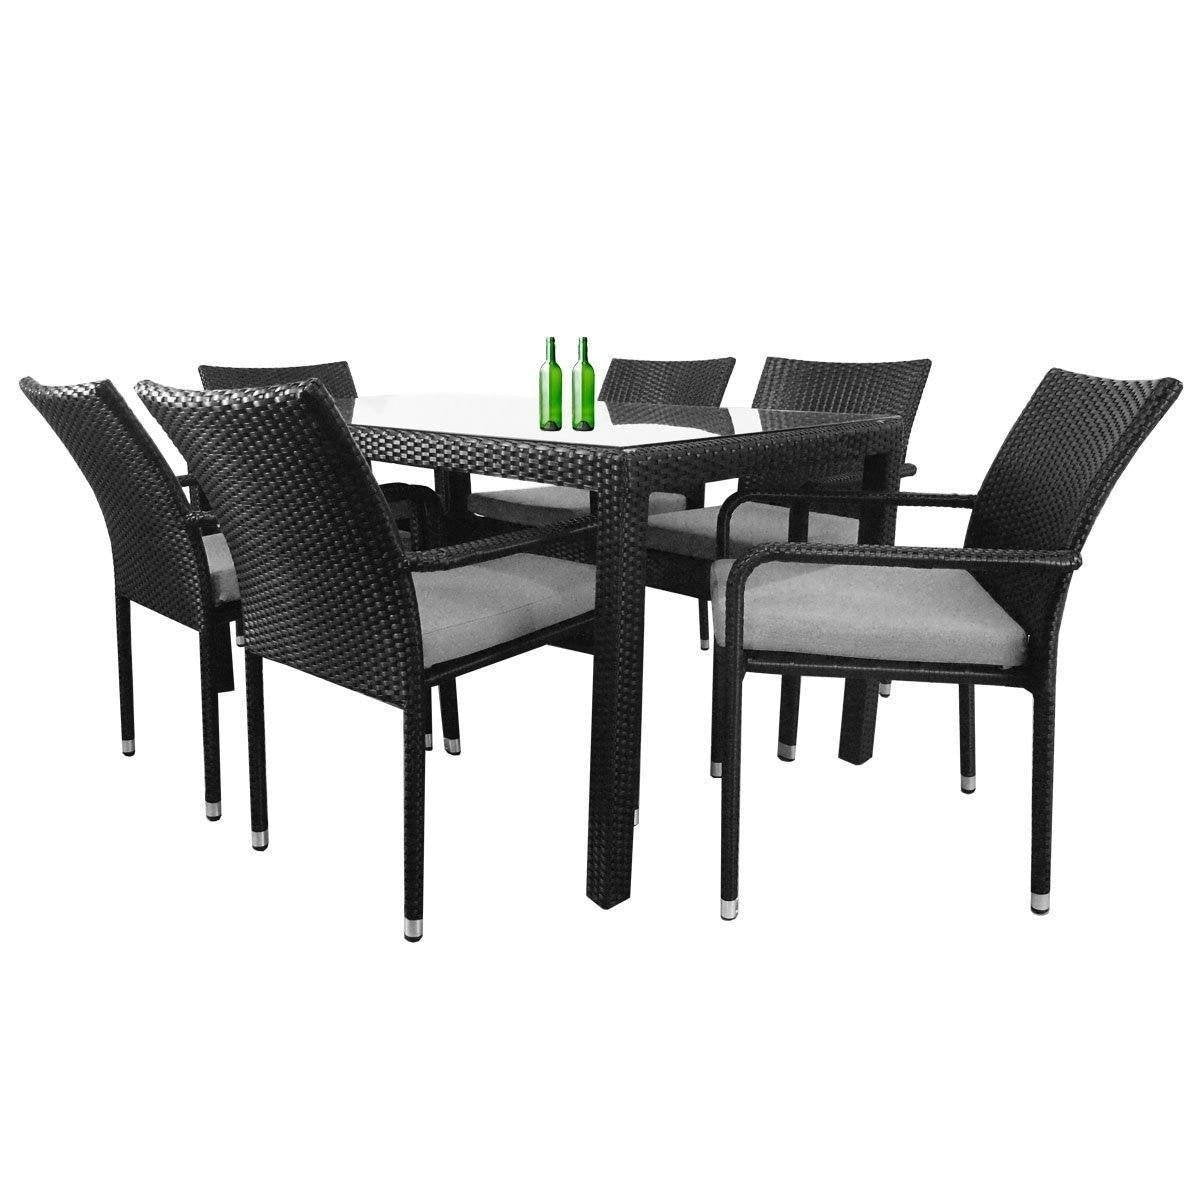 Boulevard 6 Chair Dining Set, Grey Cushions